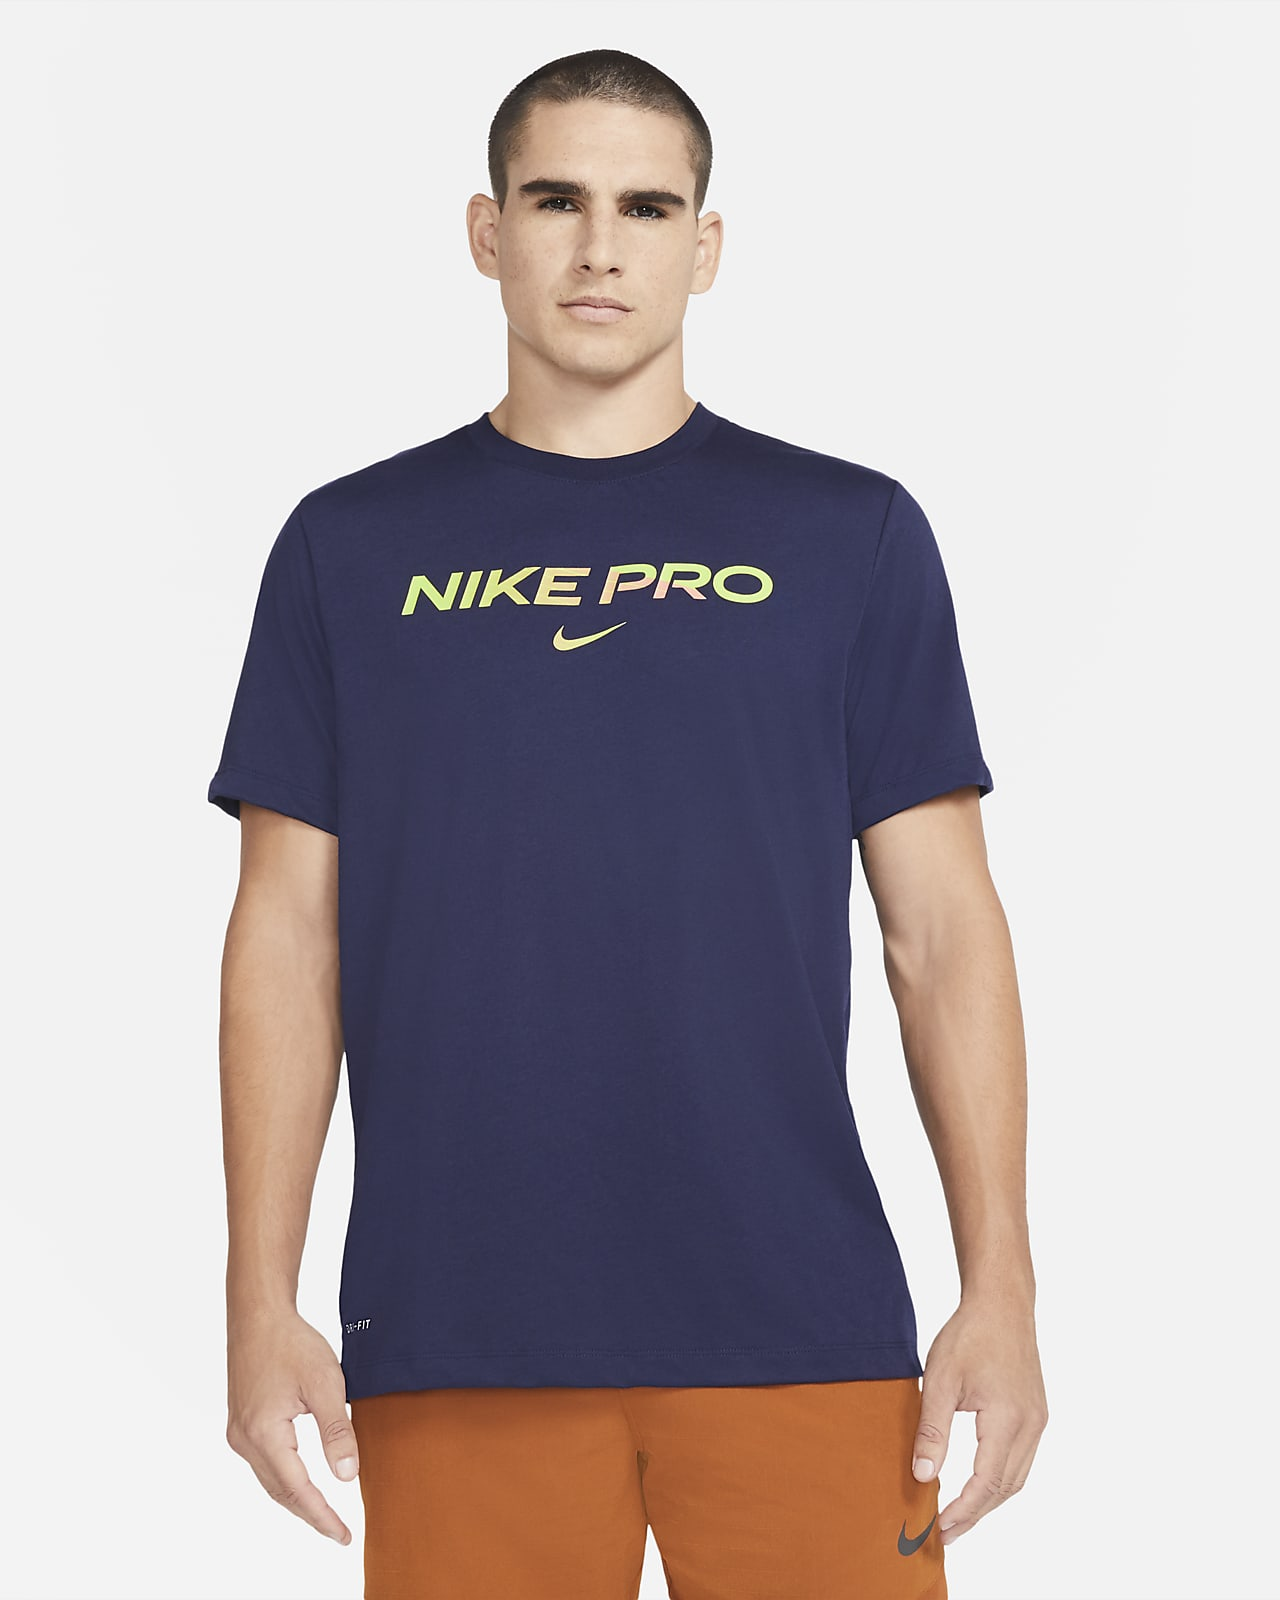 Tee-shirt Nike Pro pour Homme